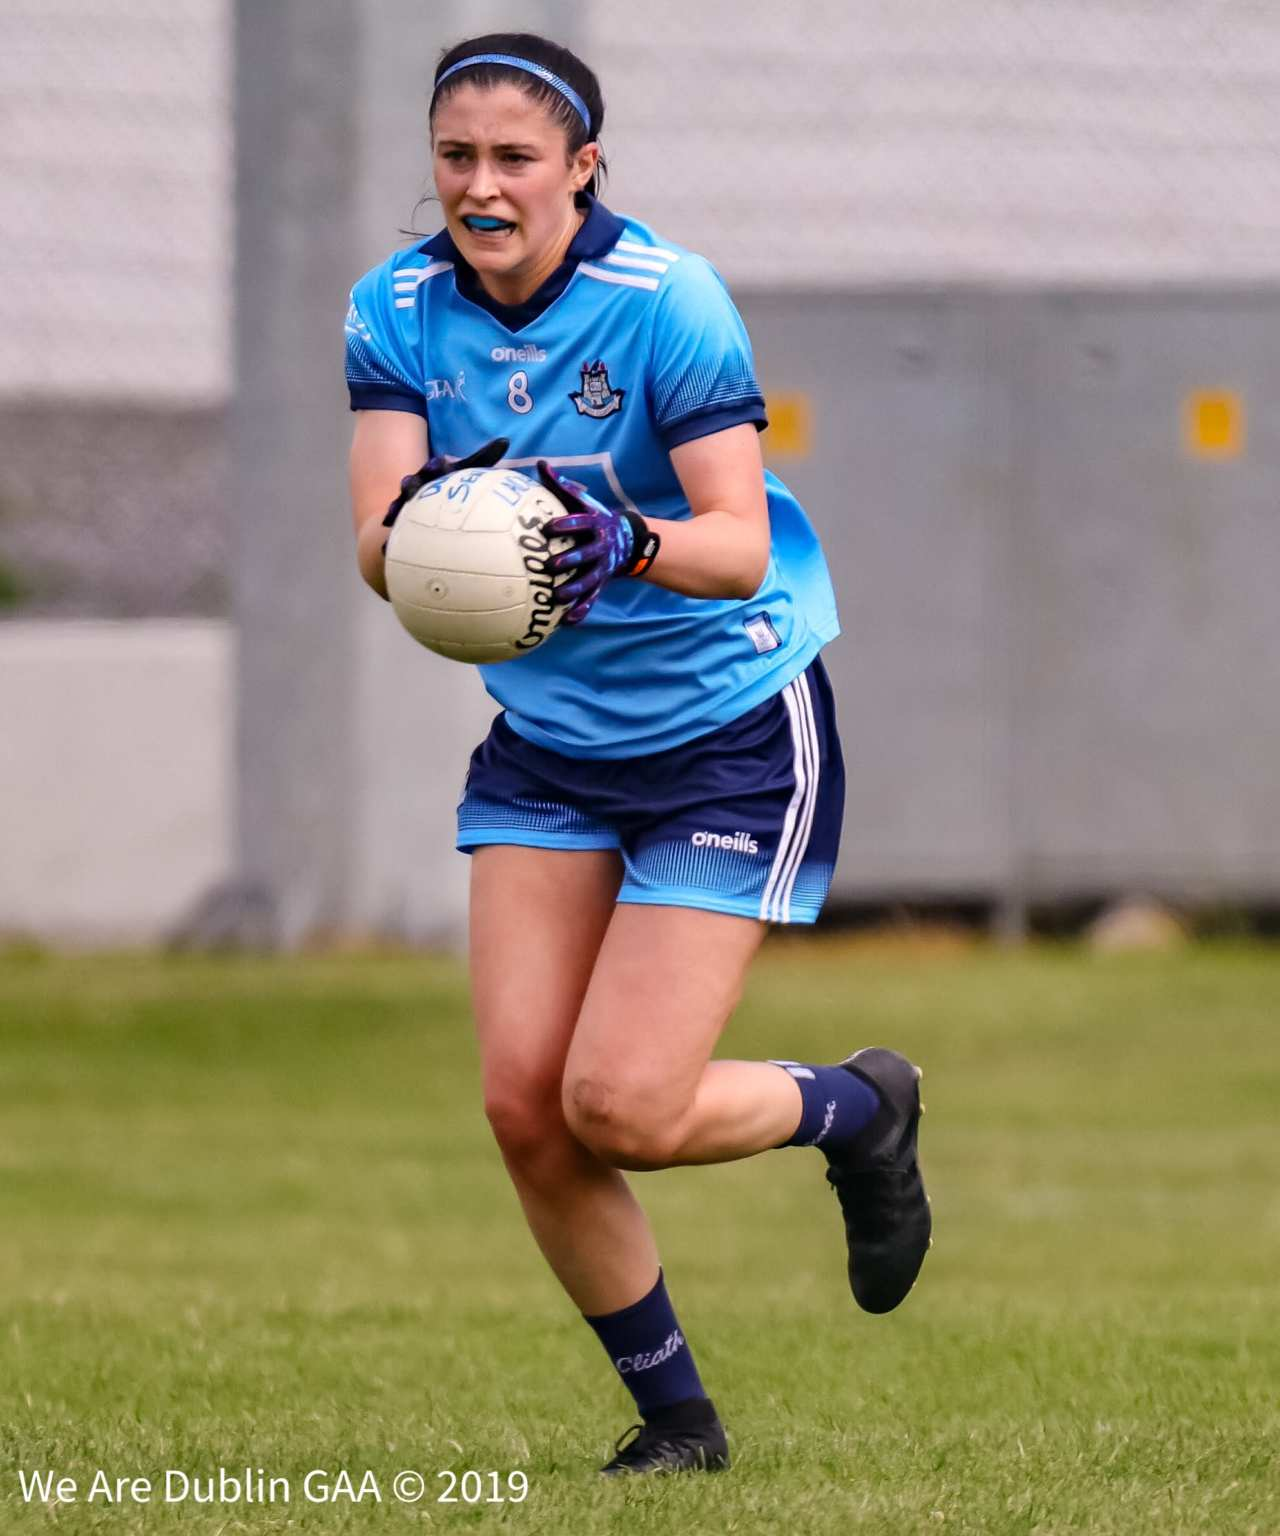 Dublin's Olwen Carey in action during the Leinster Ladies football Championship Final, Olwen is one of 13 Dublin players nominated for an award at the All Stars 2019 banquet.